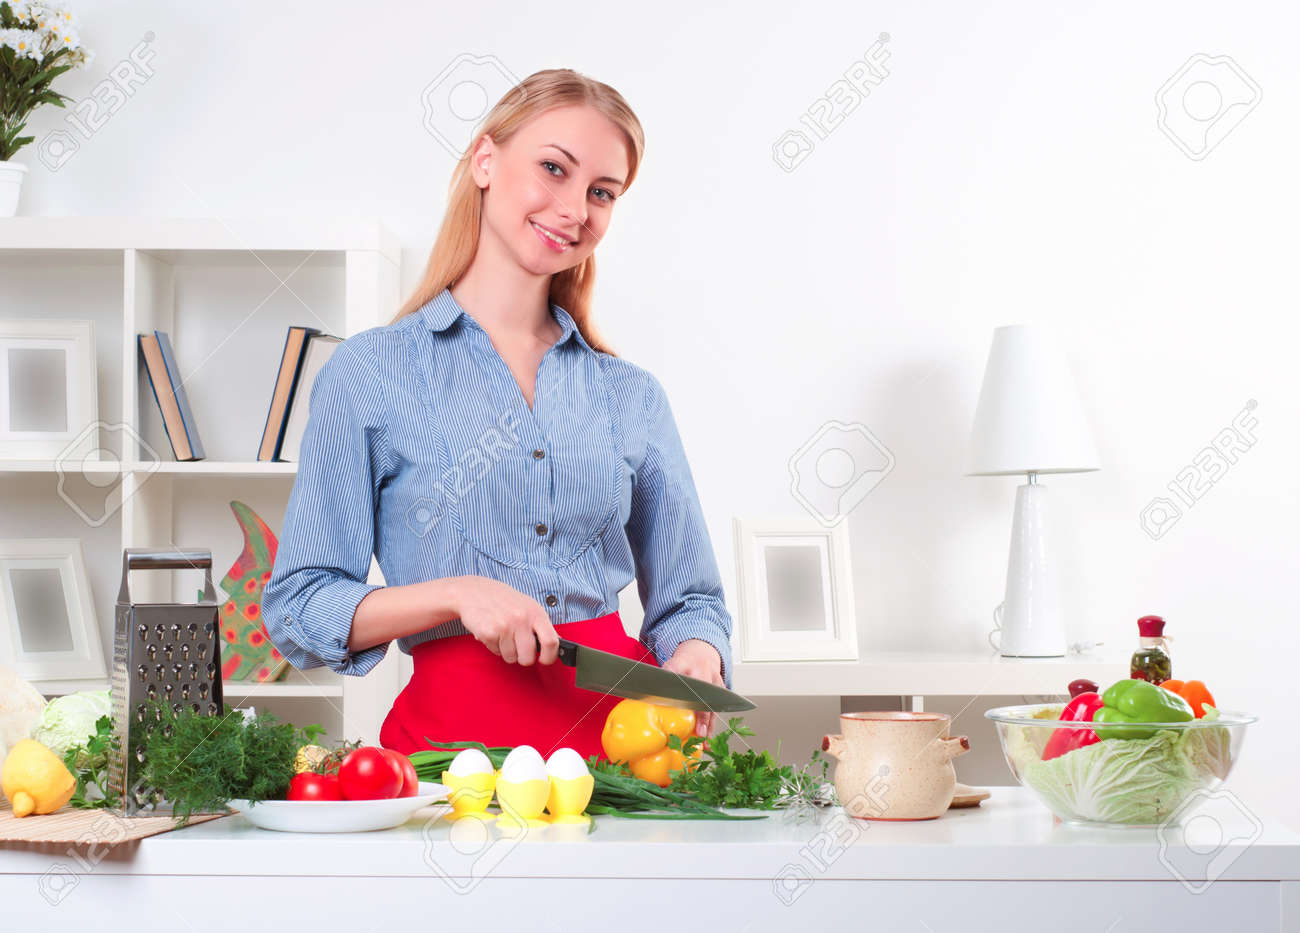 portrait beautiful woman cooking vegetables, healthy lifestyle Stock Photo - 16976596